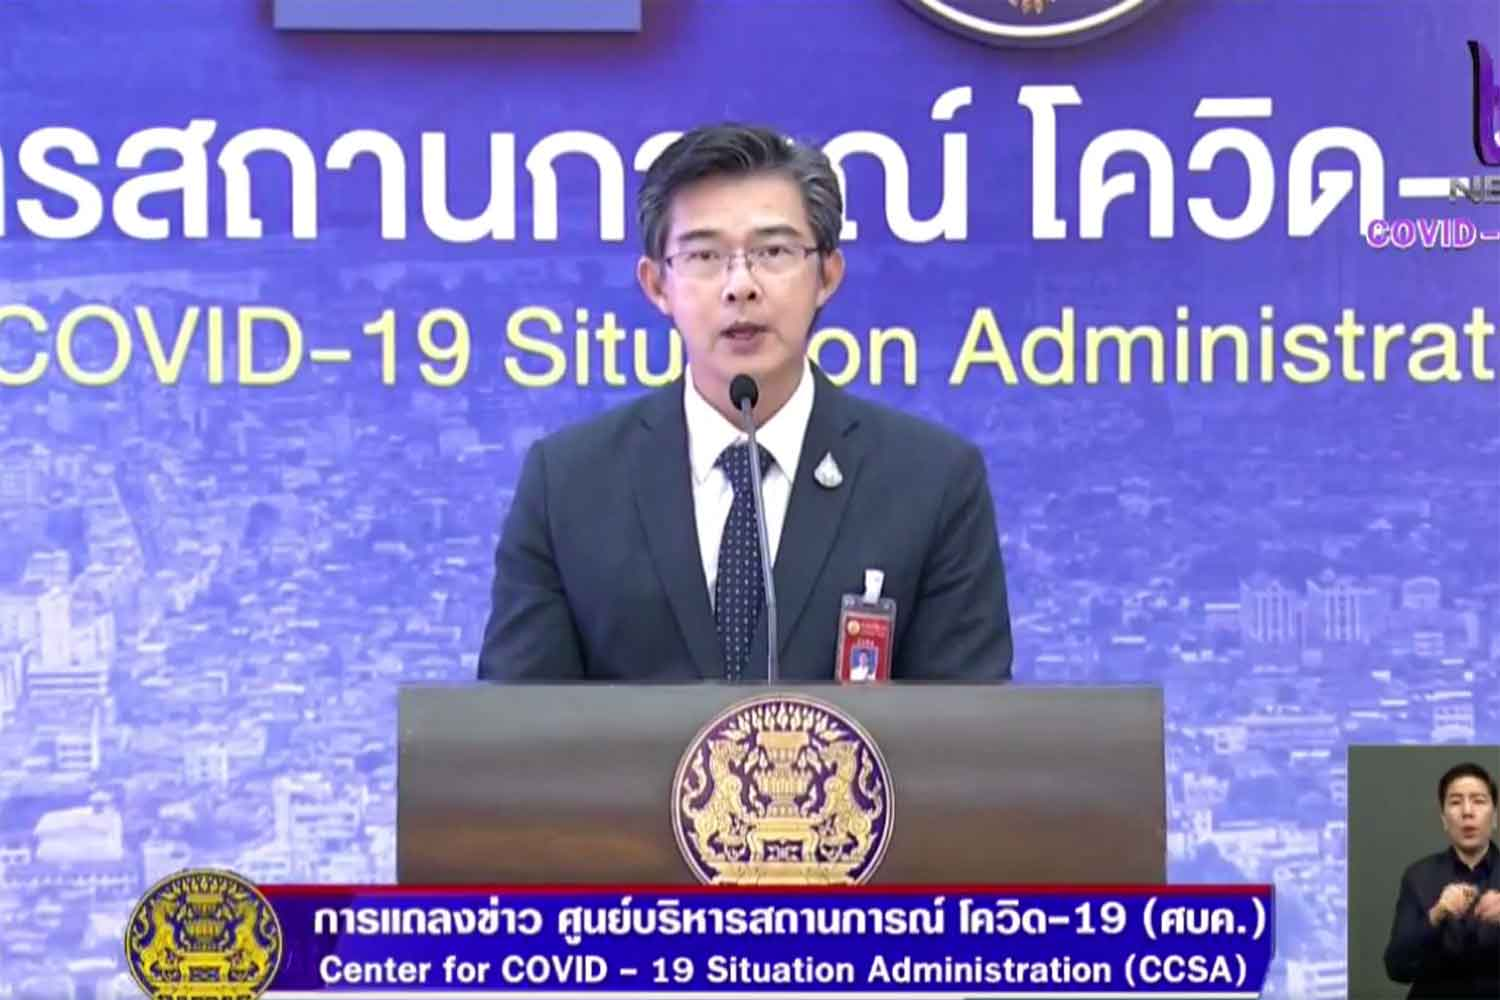 Dr Taweesilp Visanuyothin, spokesman for the Centre for Covid-19 Situation Administration, elaborates on Covid control measures that will take effect for two weeks starting on Sunday, at Government House in Bangkok on Friday. (Screenshot)